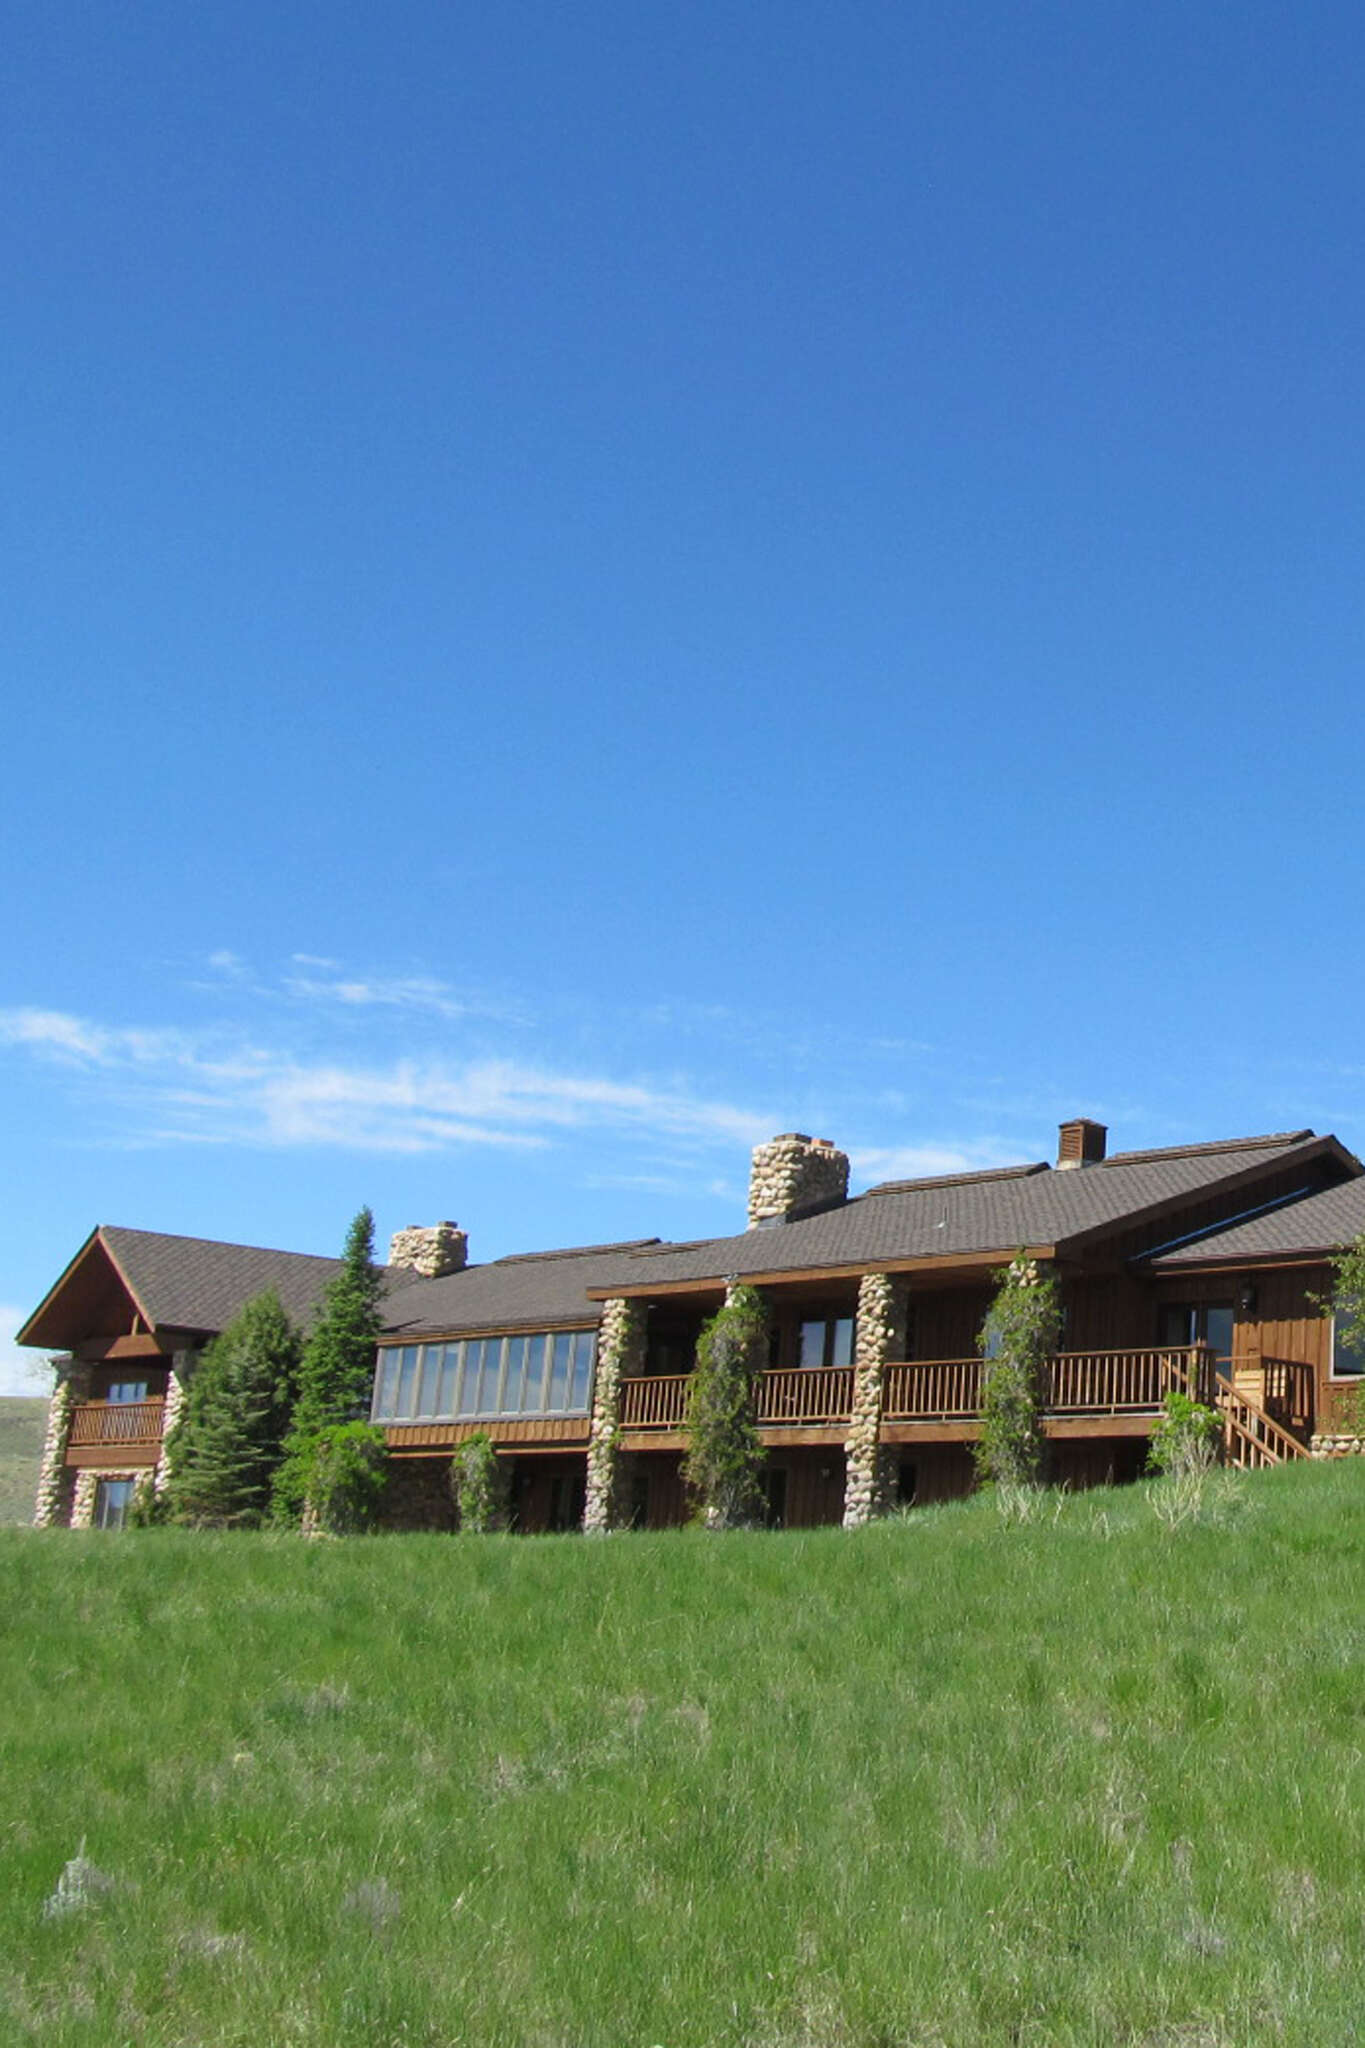 Single Family for Sale at 2500 Wy-130. Saratoga, Wyoming 82331 United States